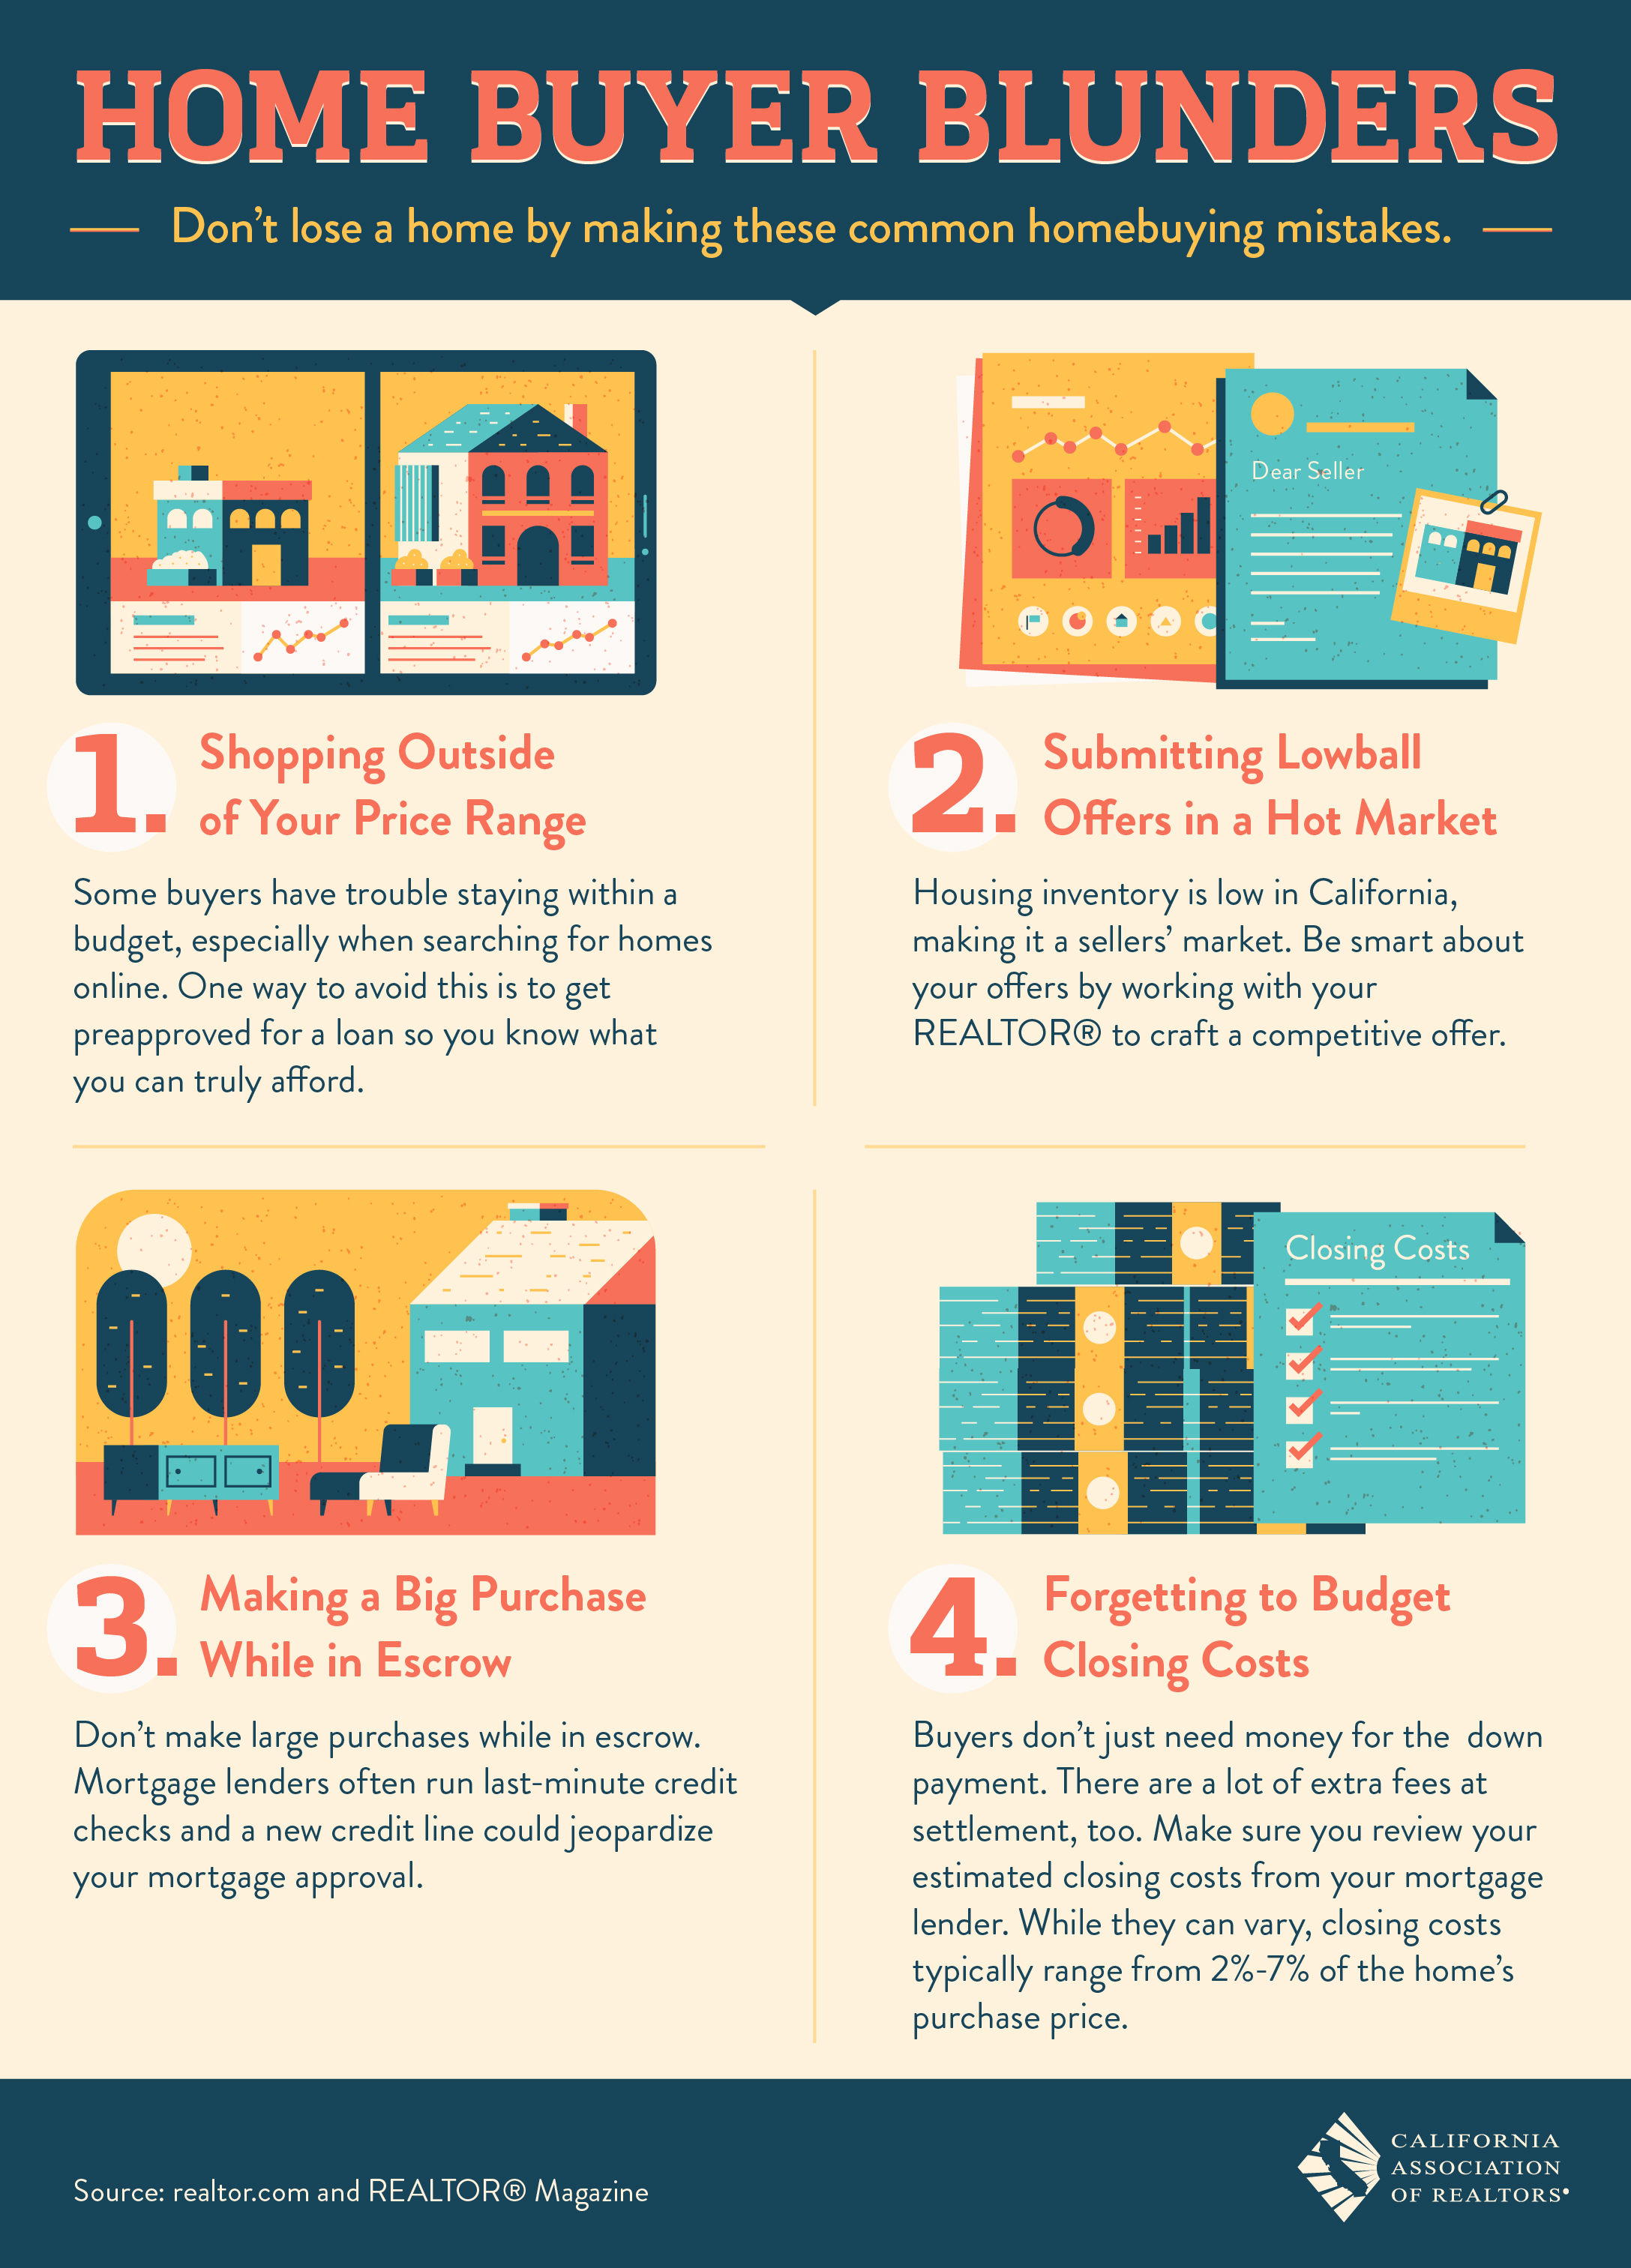 Home Buyer blunders infographic.